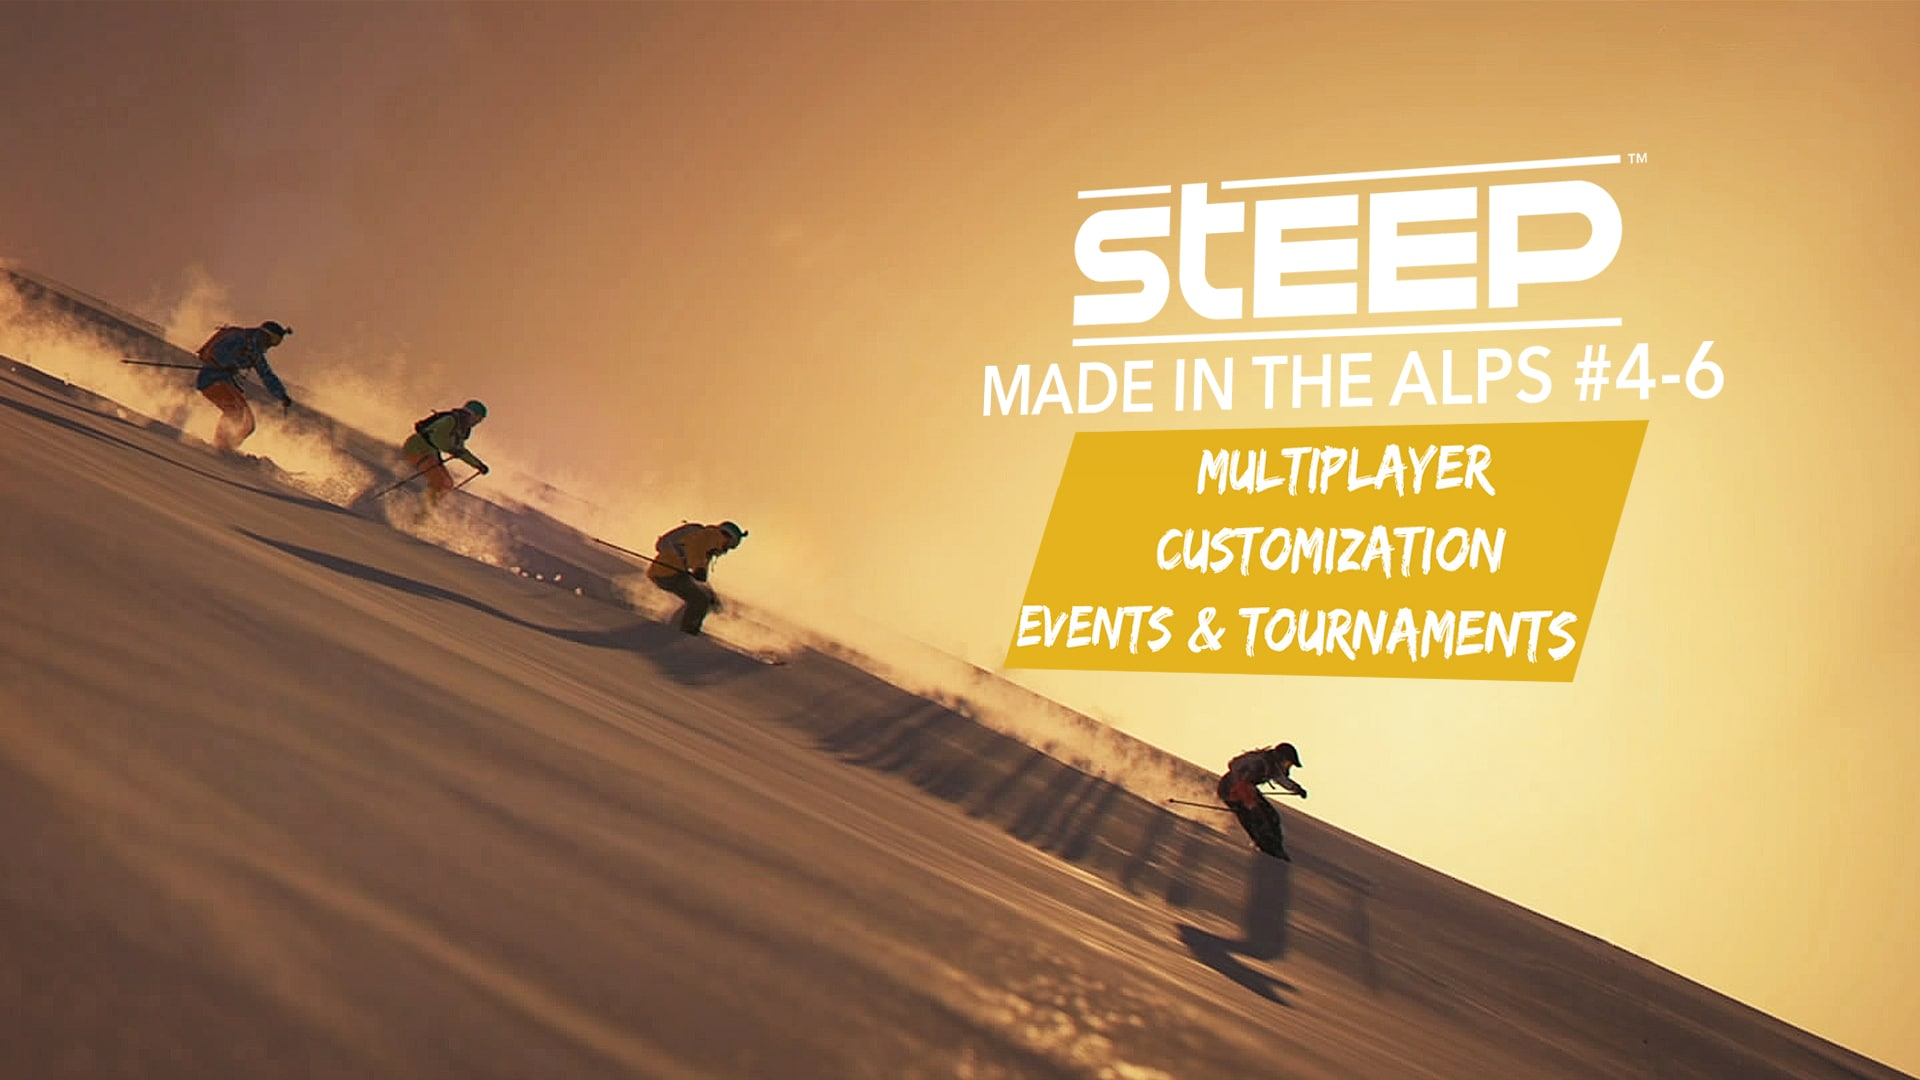 [2017-02-03] HEADER_Steep_Made-in-the-Alps_4-6-combo